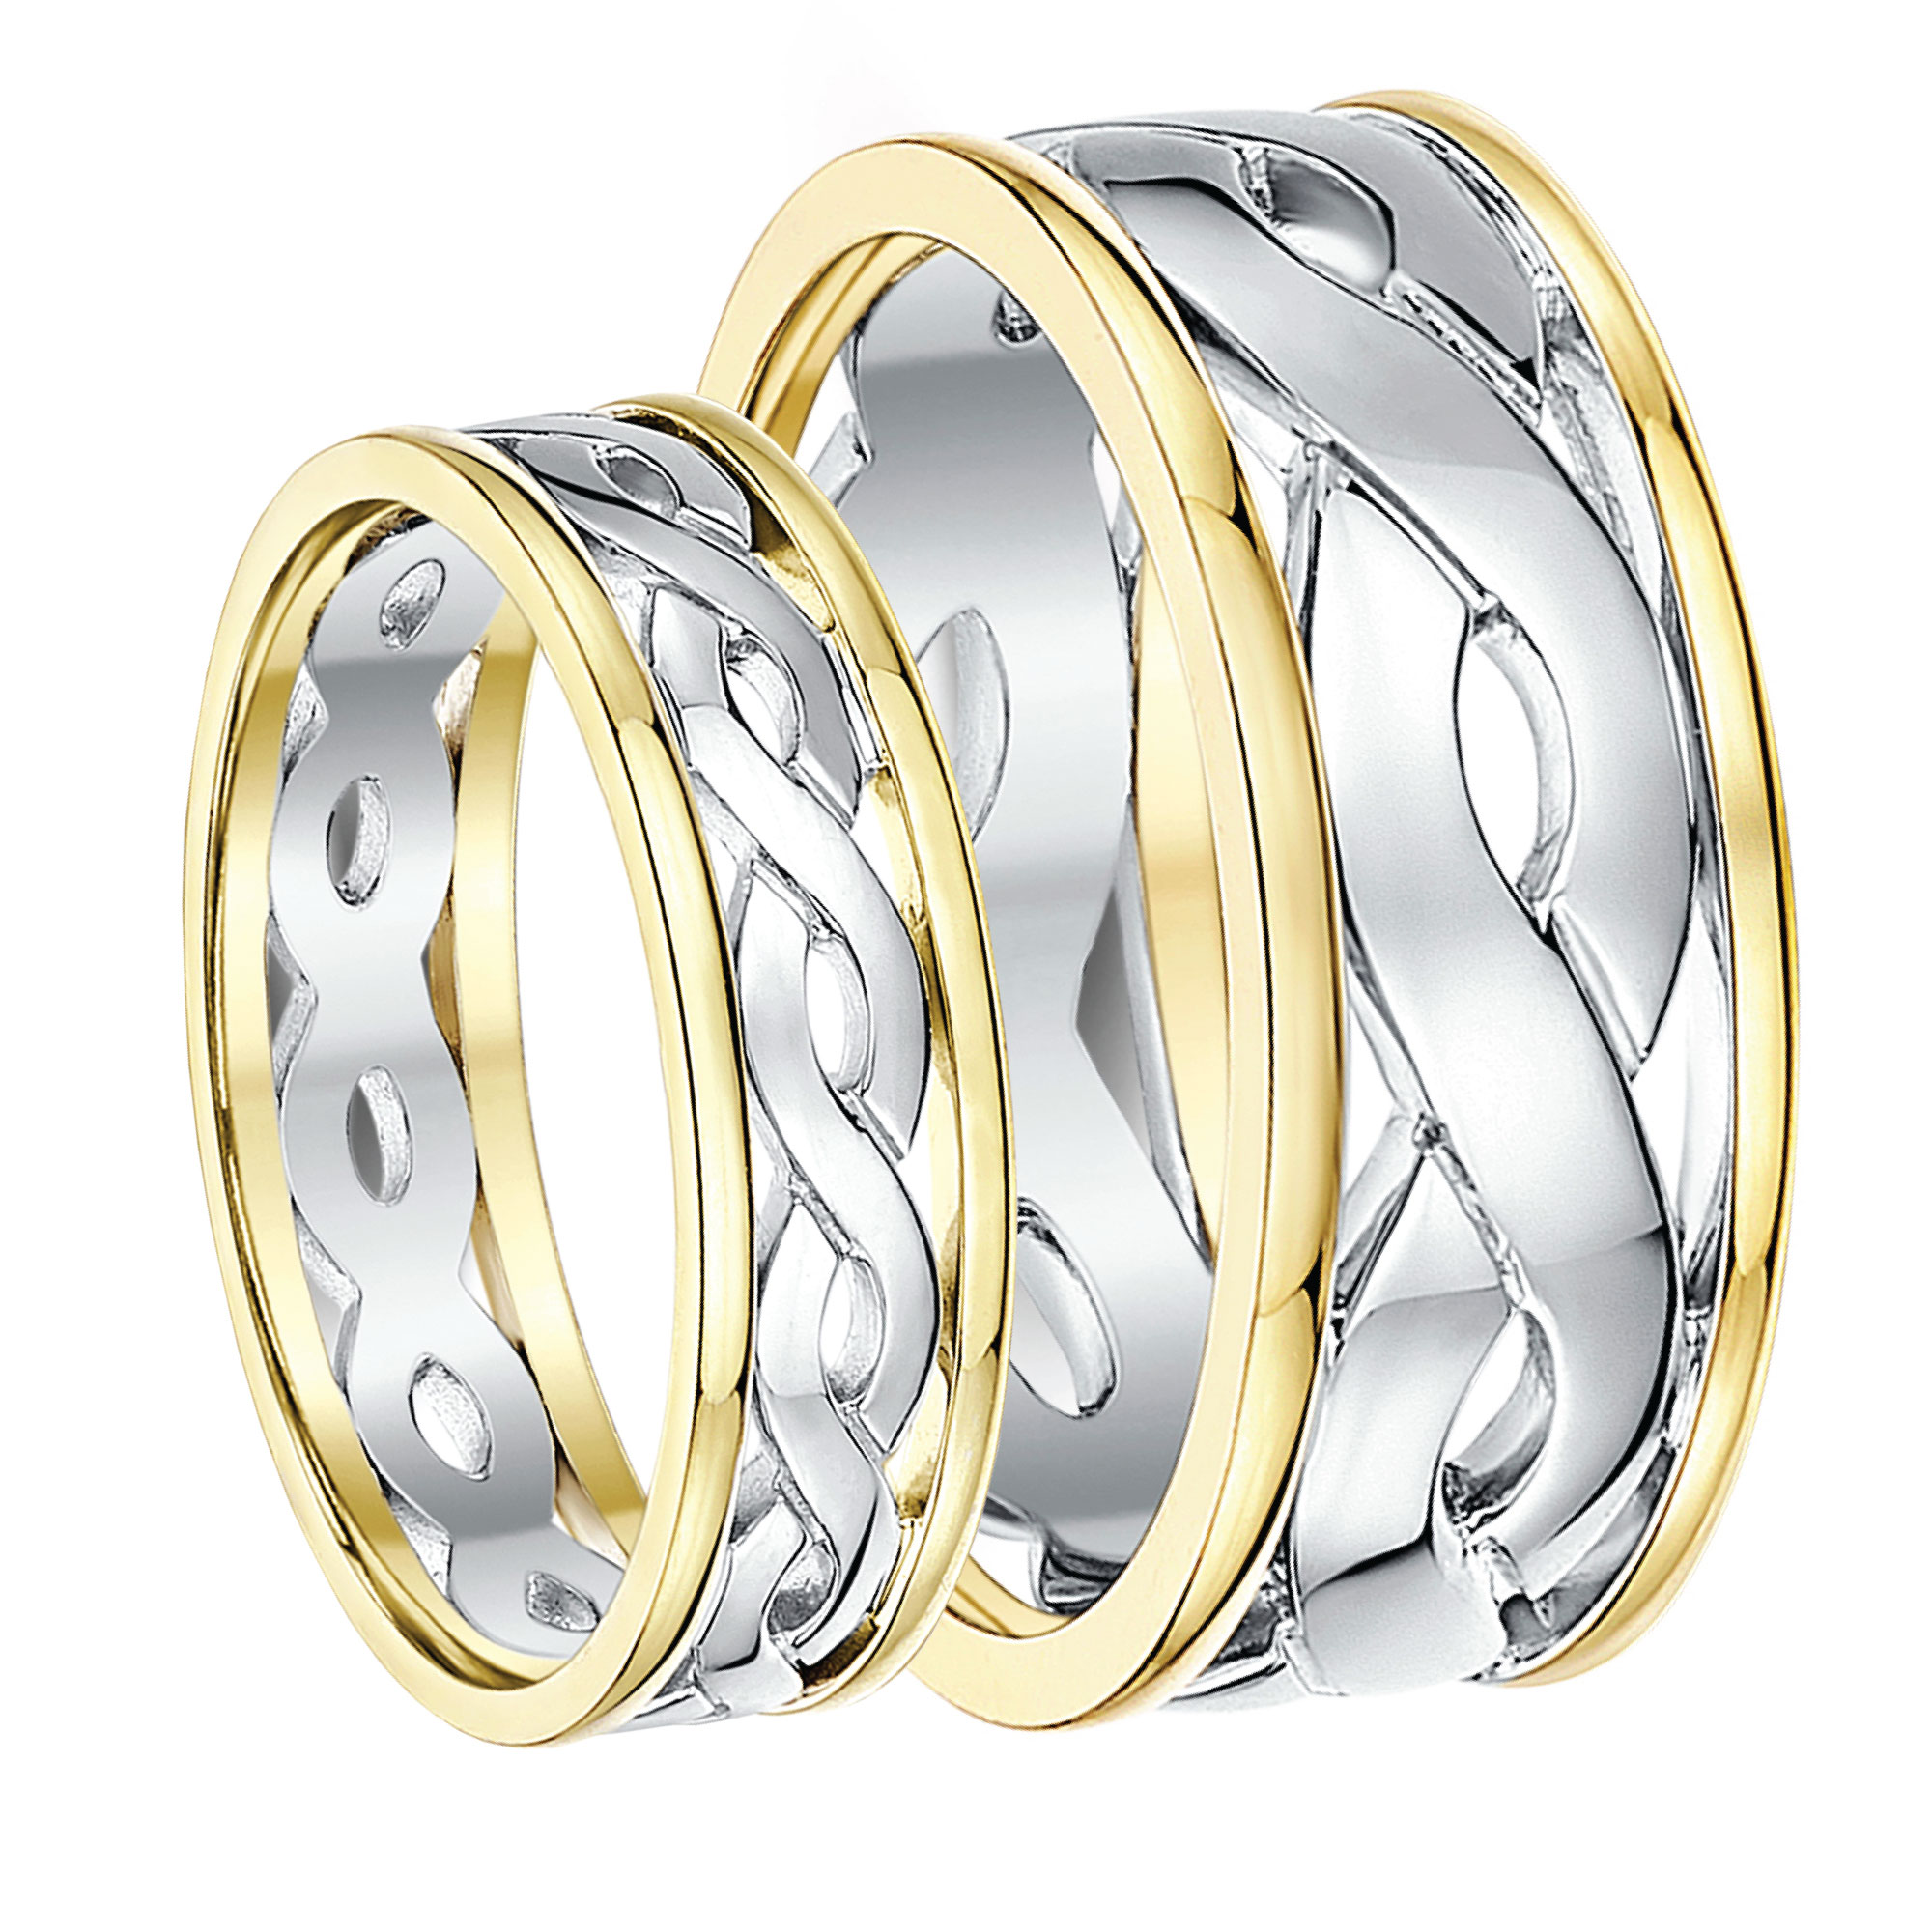 weddingrings patterned rings matching platinum bevelled centres bands satin and wedding weddings polished hers his edges with pin